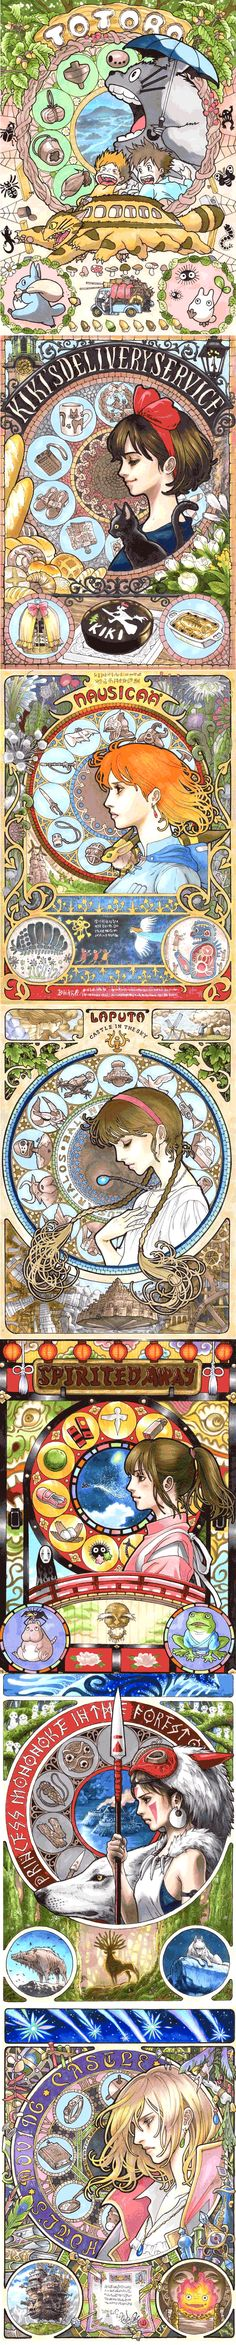 Studio Ghibli's Greatest Works Drawn In Art Nouveau by TAKUMI